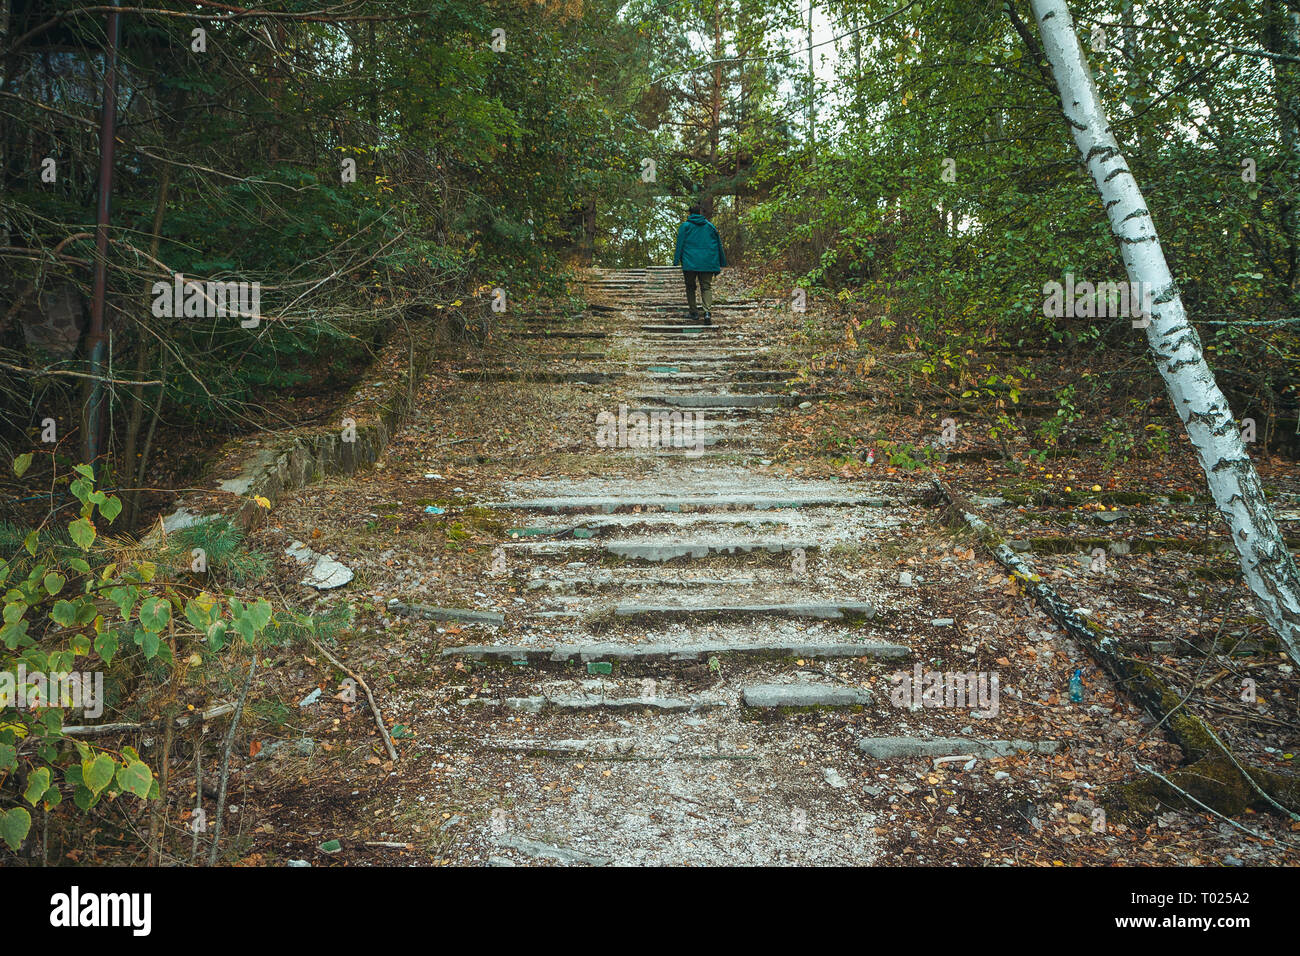 Chornobyl exclusion zone. Radioactive zone in Pripyat city - abandoned ghost town. Chernobyl history of catastrophe. Lost place in Ukraine, USSR - Stock Image